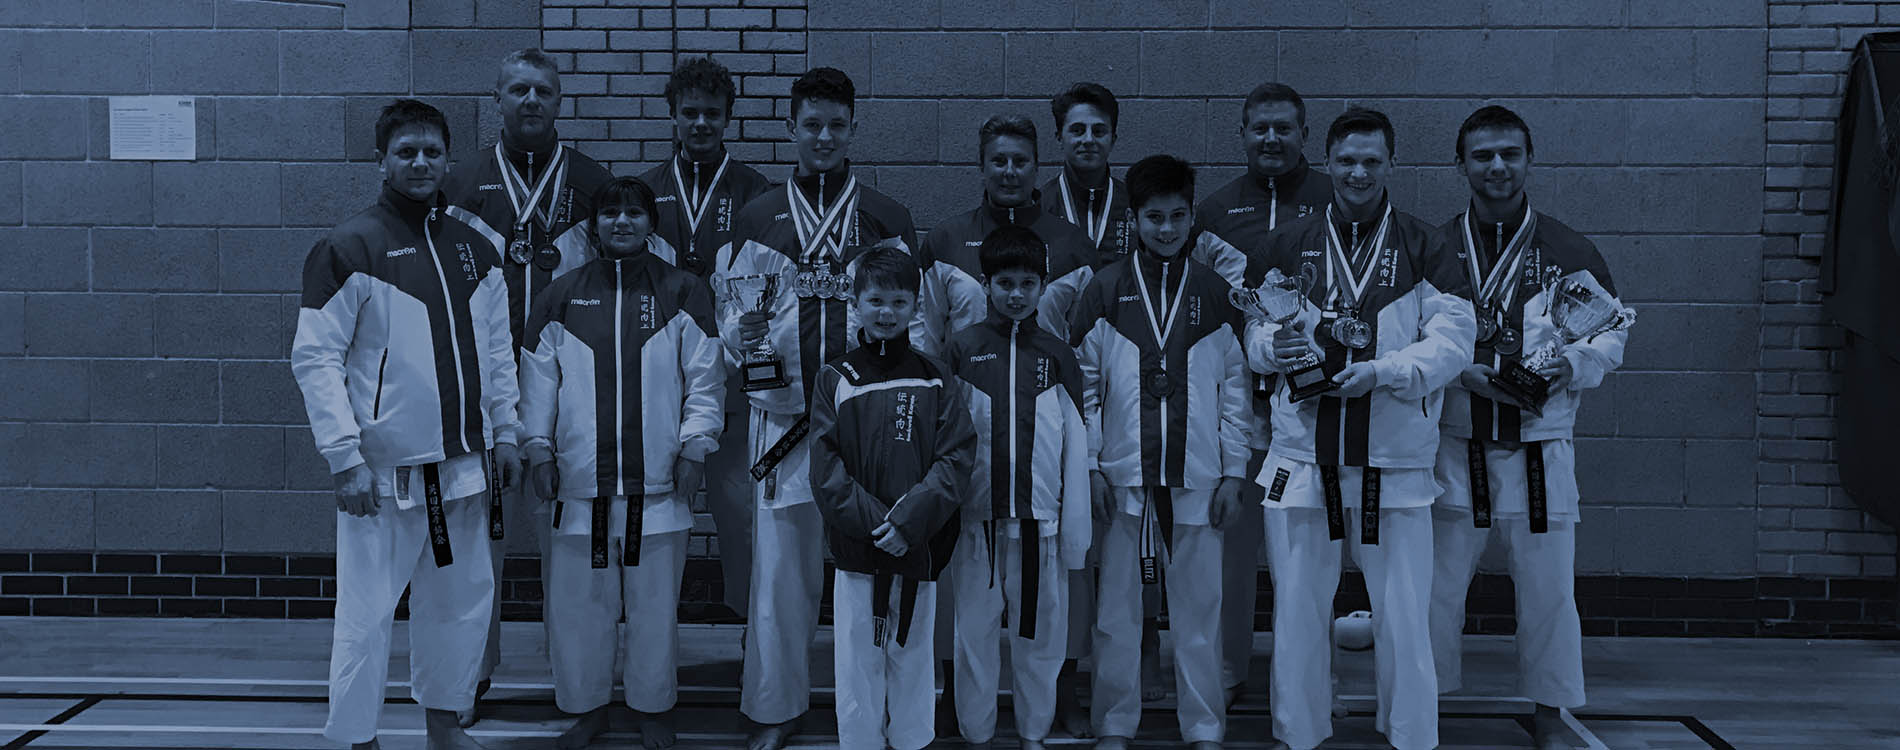 Club performs at Southern Region Karate Championships